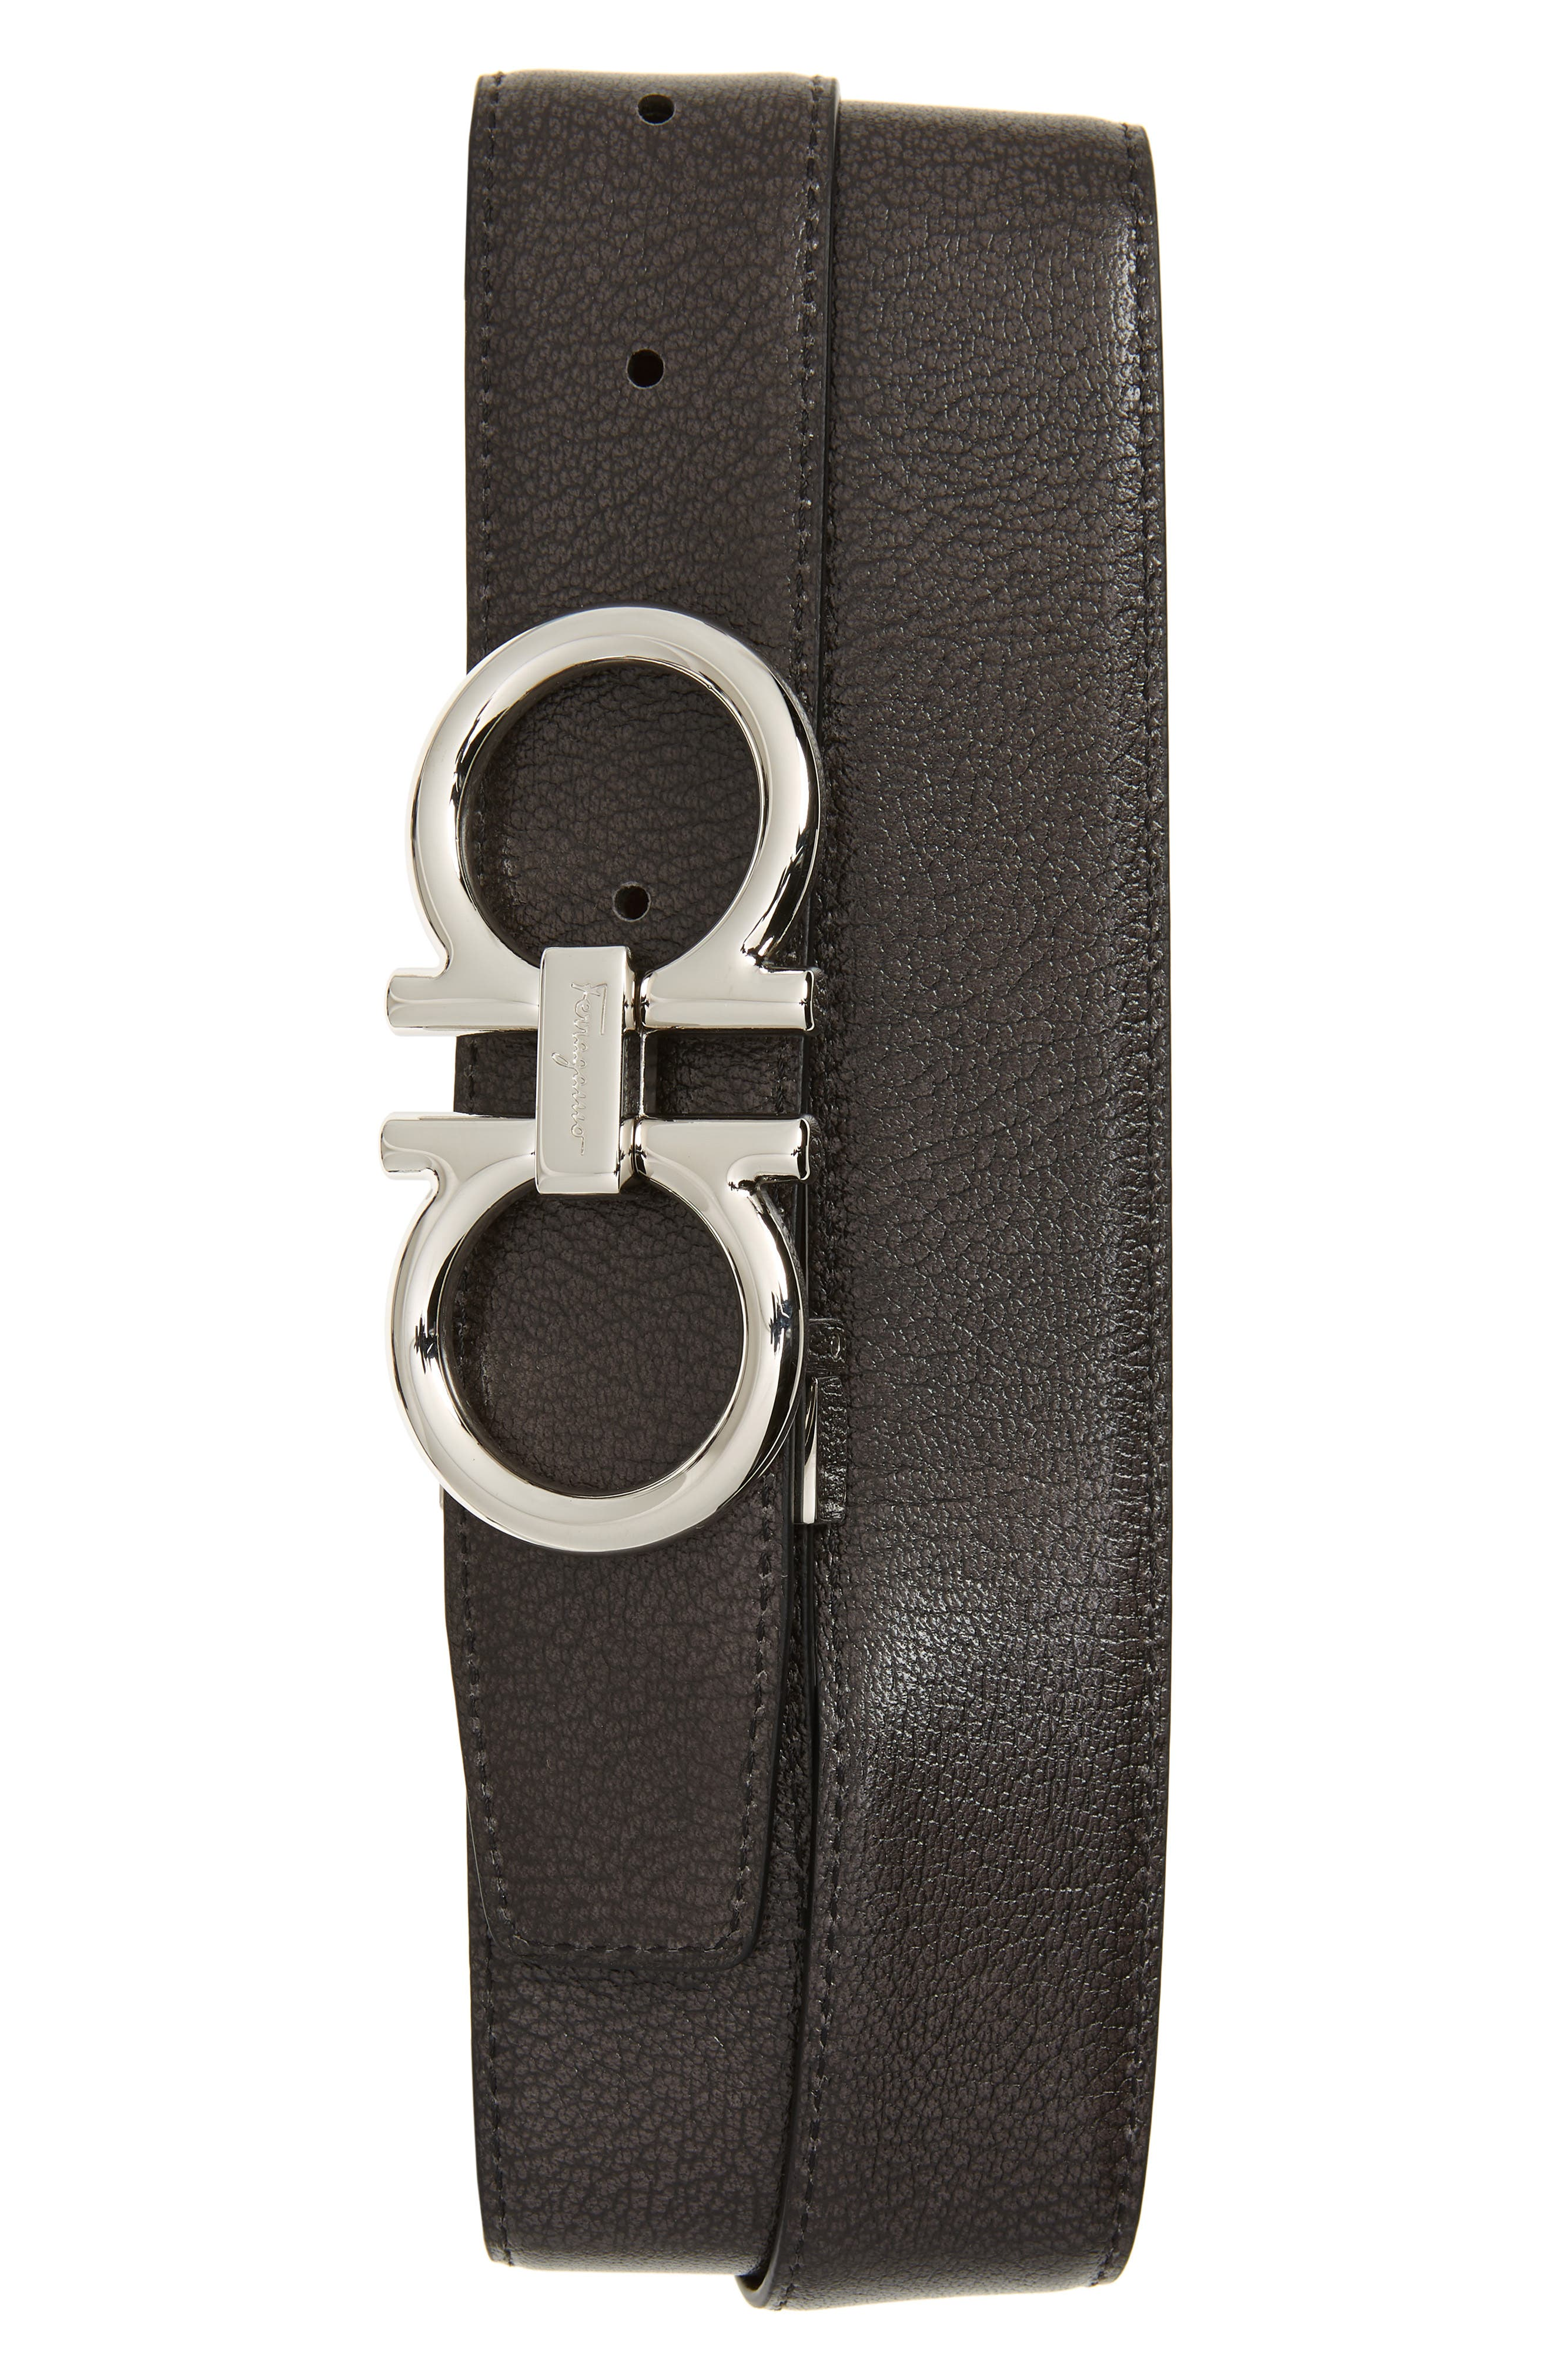 Salvatore Ferragamo Belt Double Gancio Reversible Calfskin Leather Belt